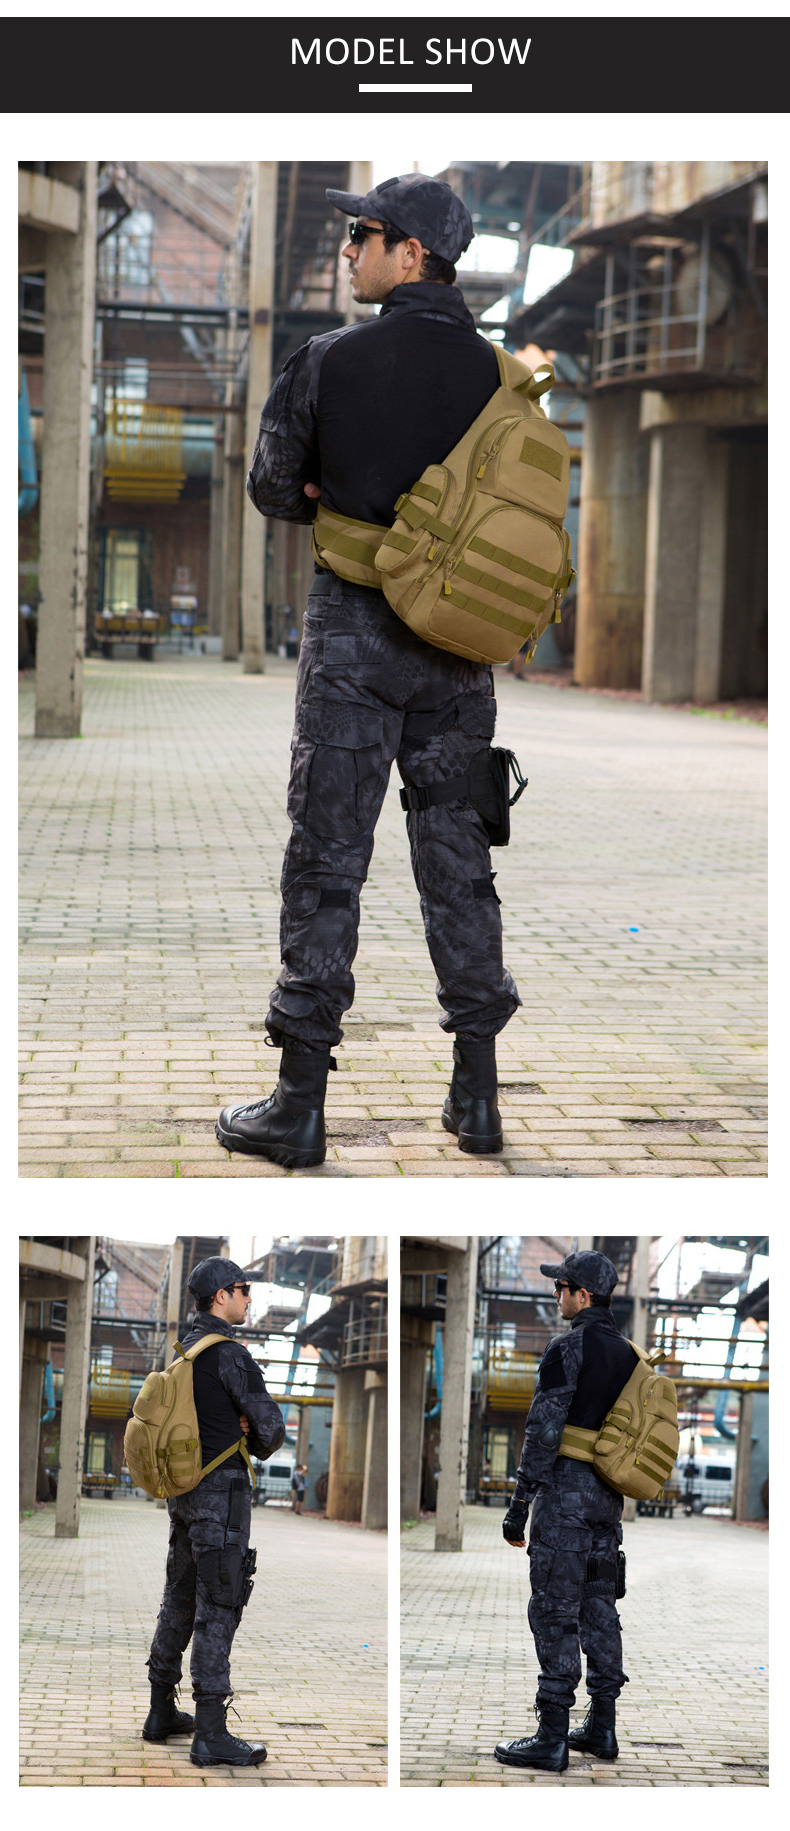 HTB1fzSEh CWBKNjSZFtq6yC3FXaV - Men 20-35L Tactical Sling Bag Waterproof Shoulder Sports Bag Tactical Military Backpacks Camping Outdoor Single Belt Chest Pack